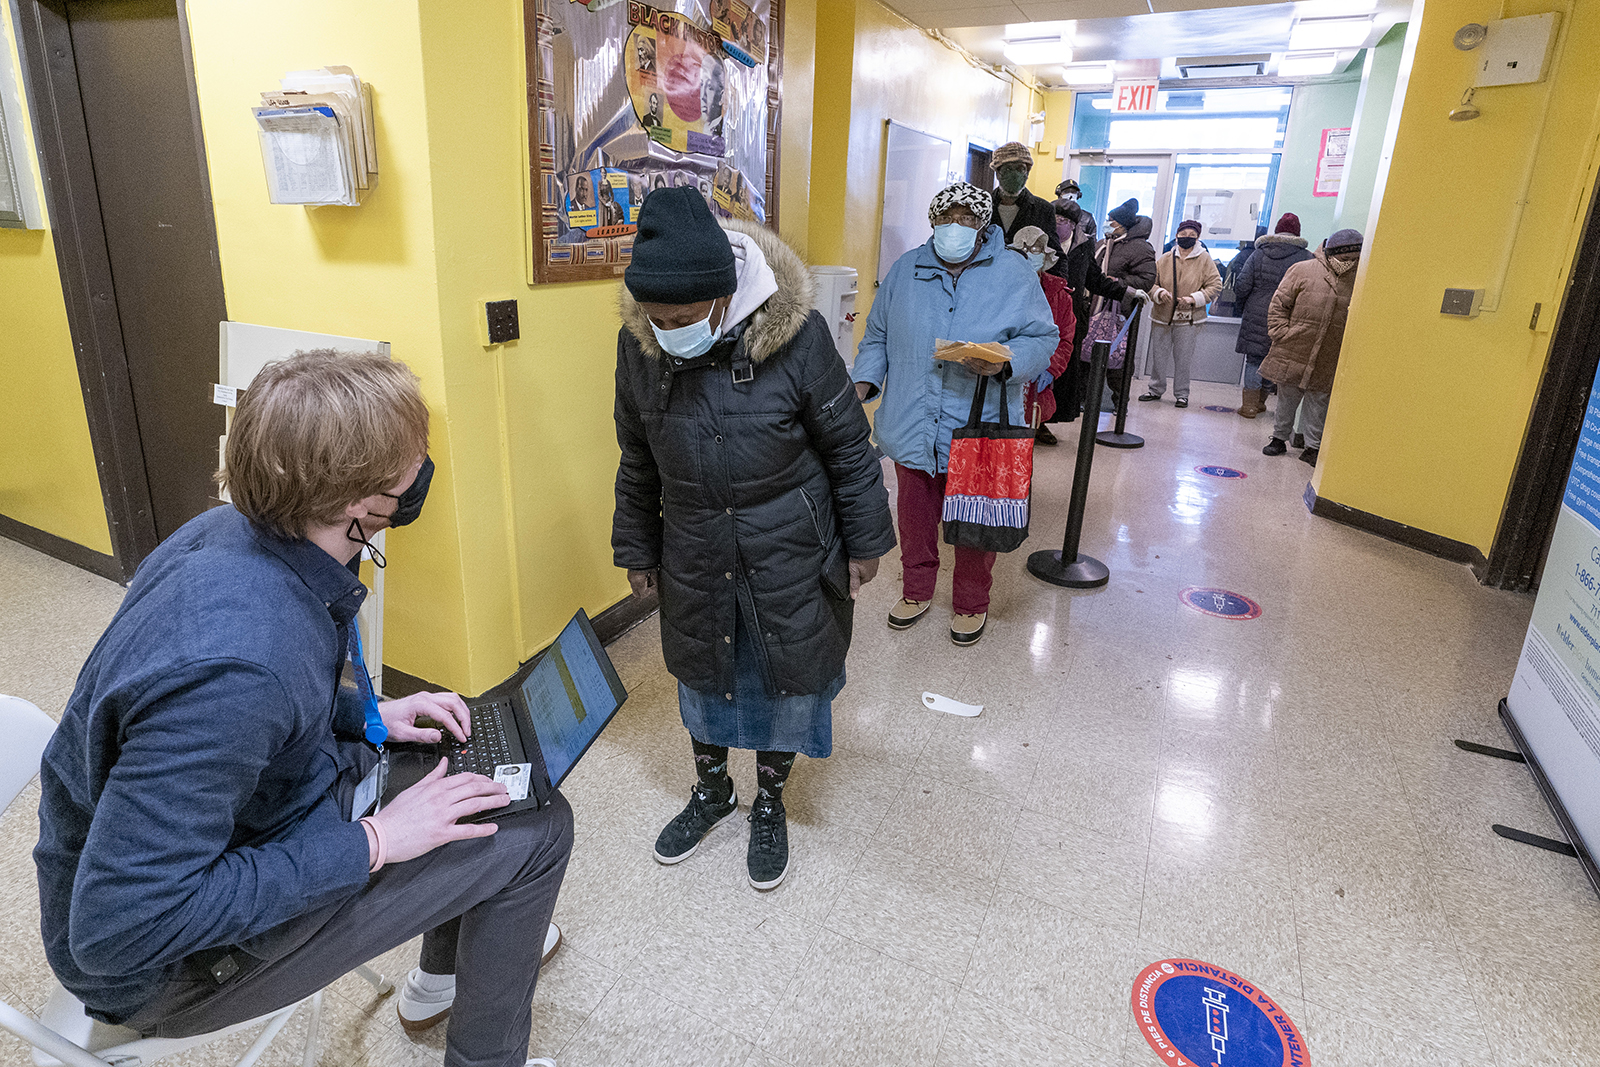 A screener registers residents of the William Reid Apartments at a Covid-19 pop-up vaccination site at the NYCHA housing complex on Saturday, January 23, in Brooklyn, New York.